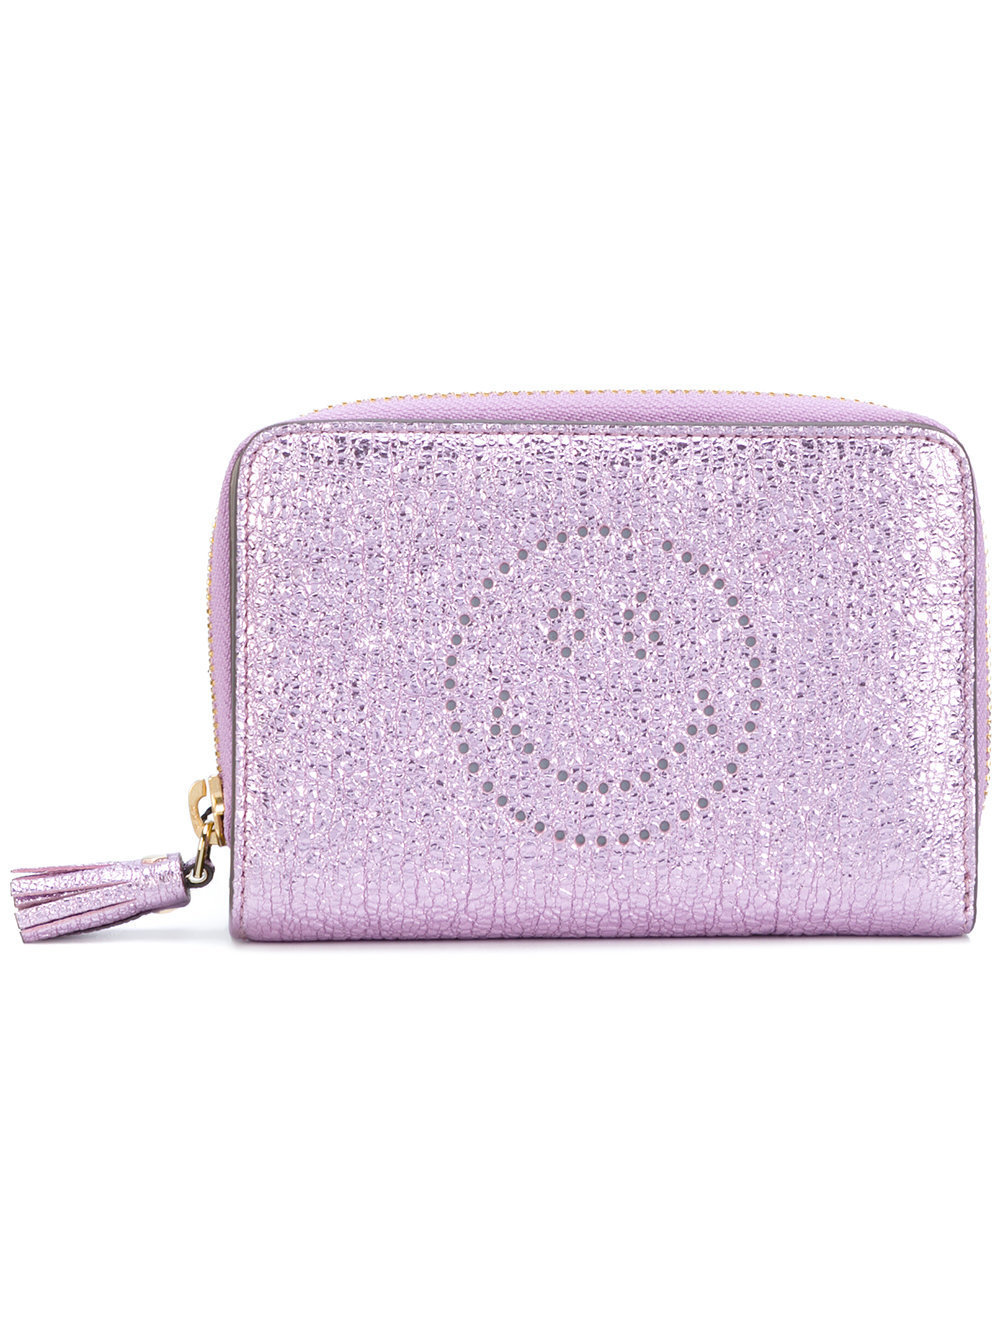 Anya Hindmarch  Smiley 財布